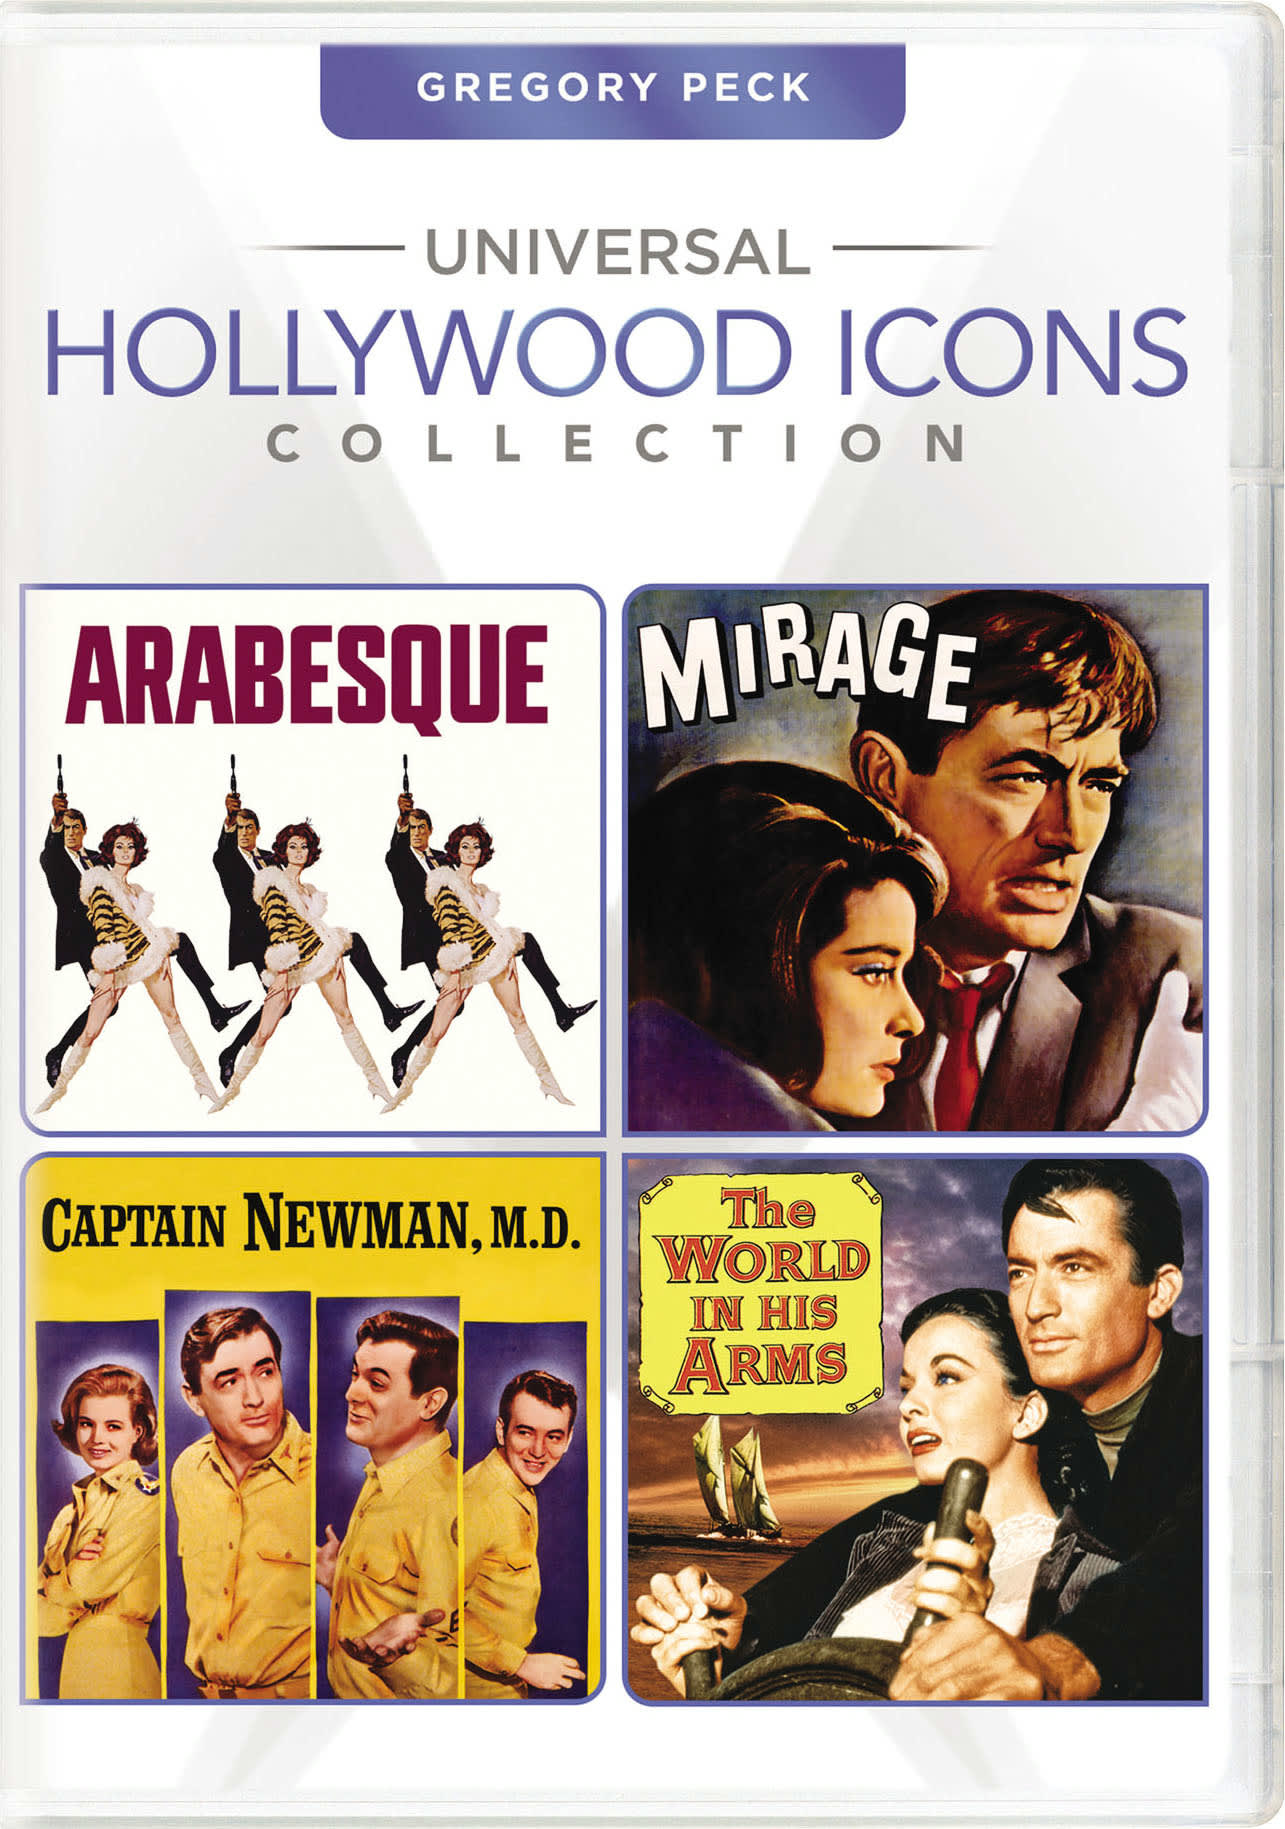 Universal Hollywood Icons Collection: Gregory Peck [DVD]